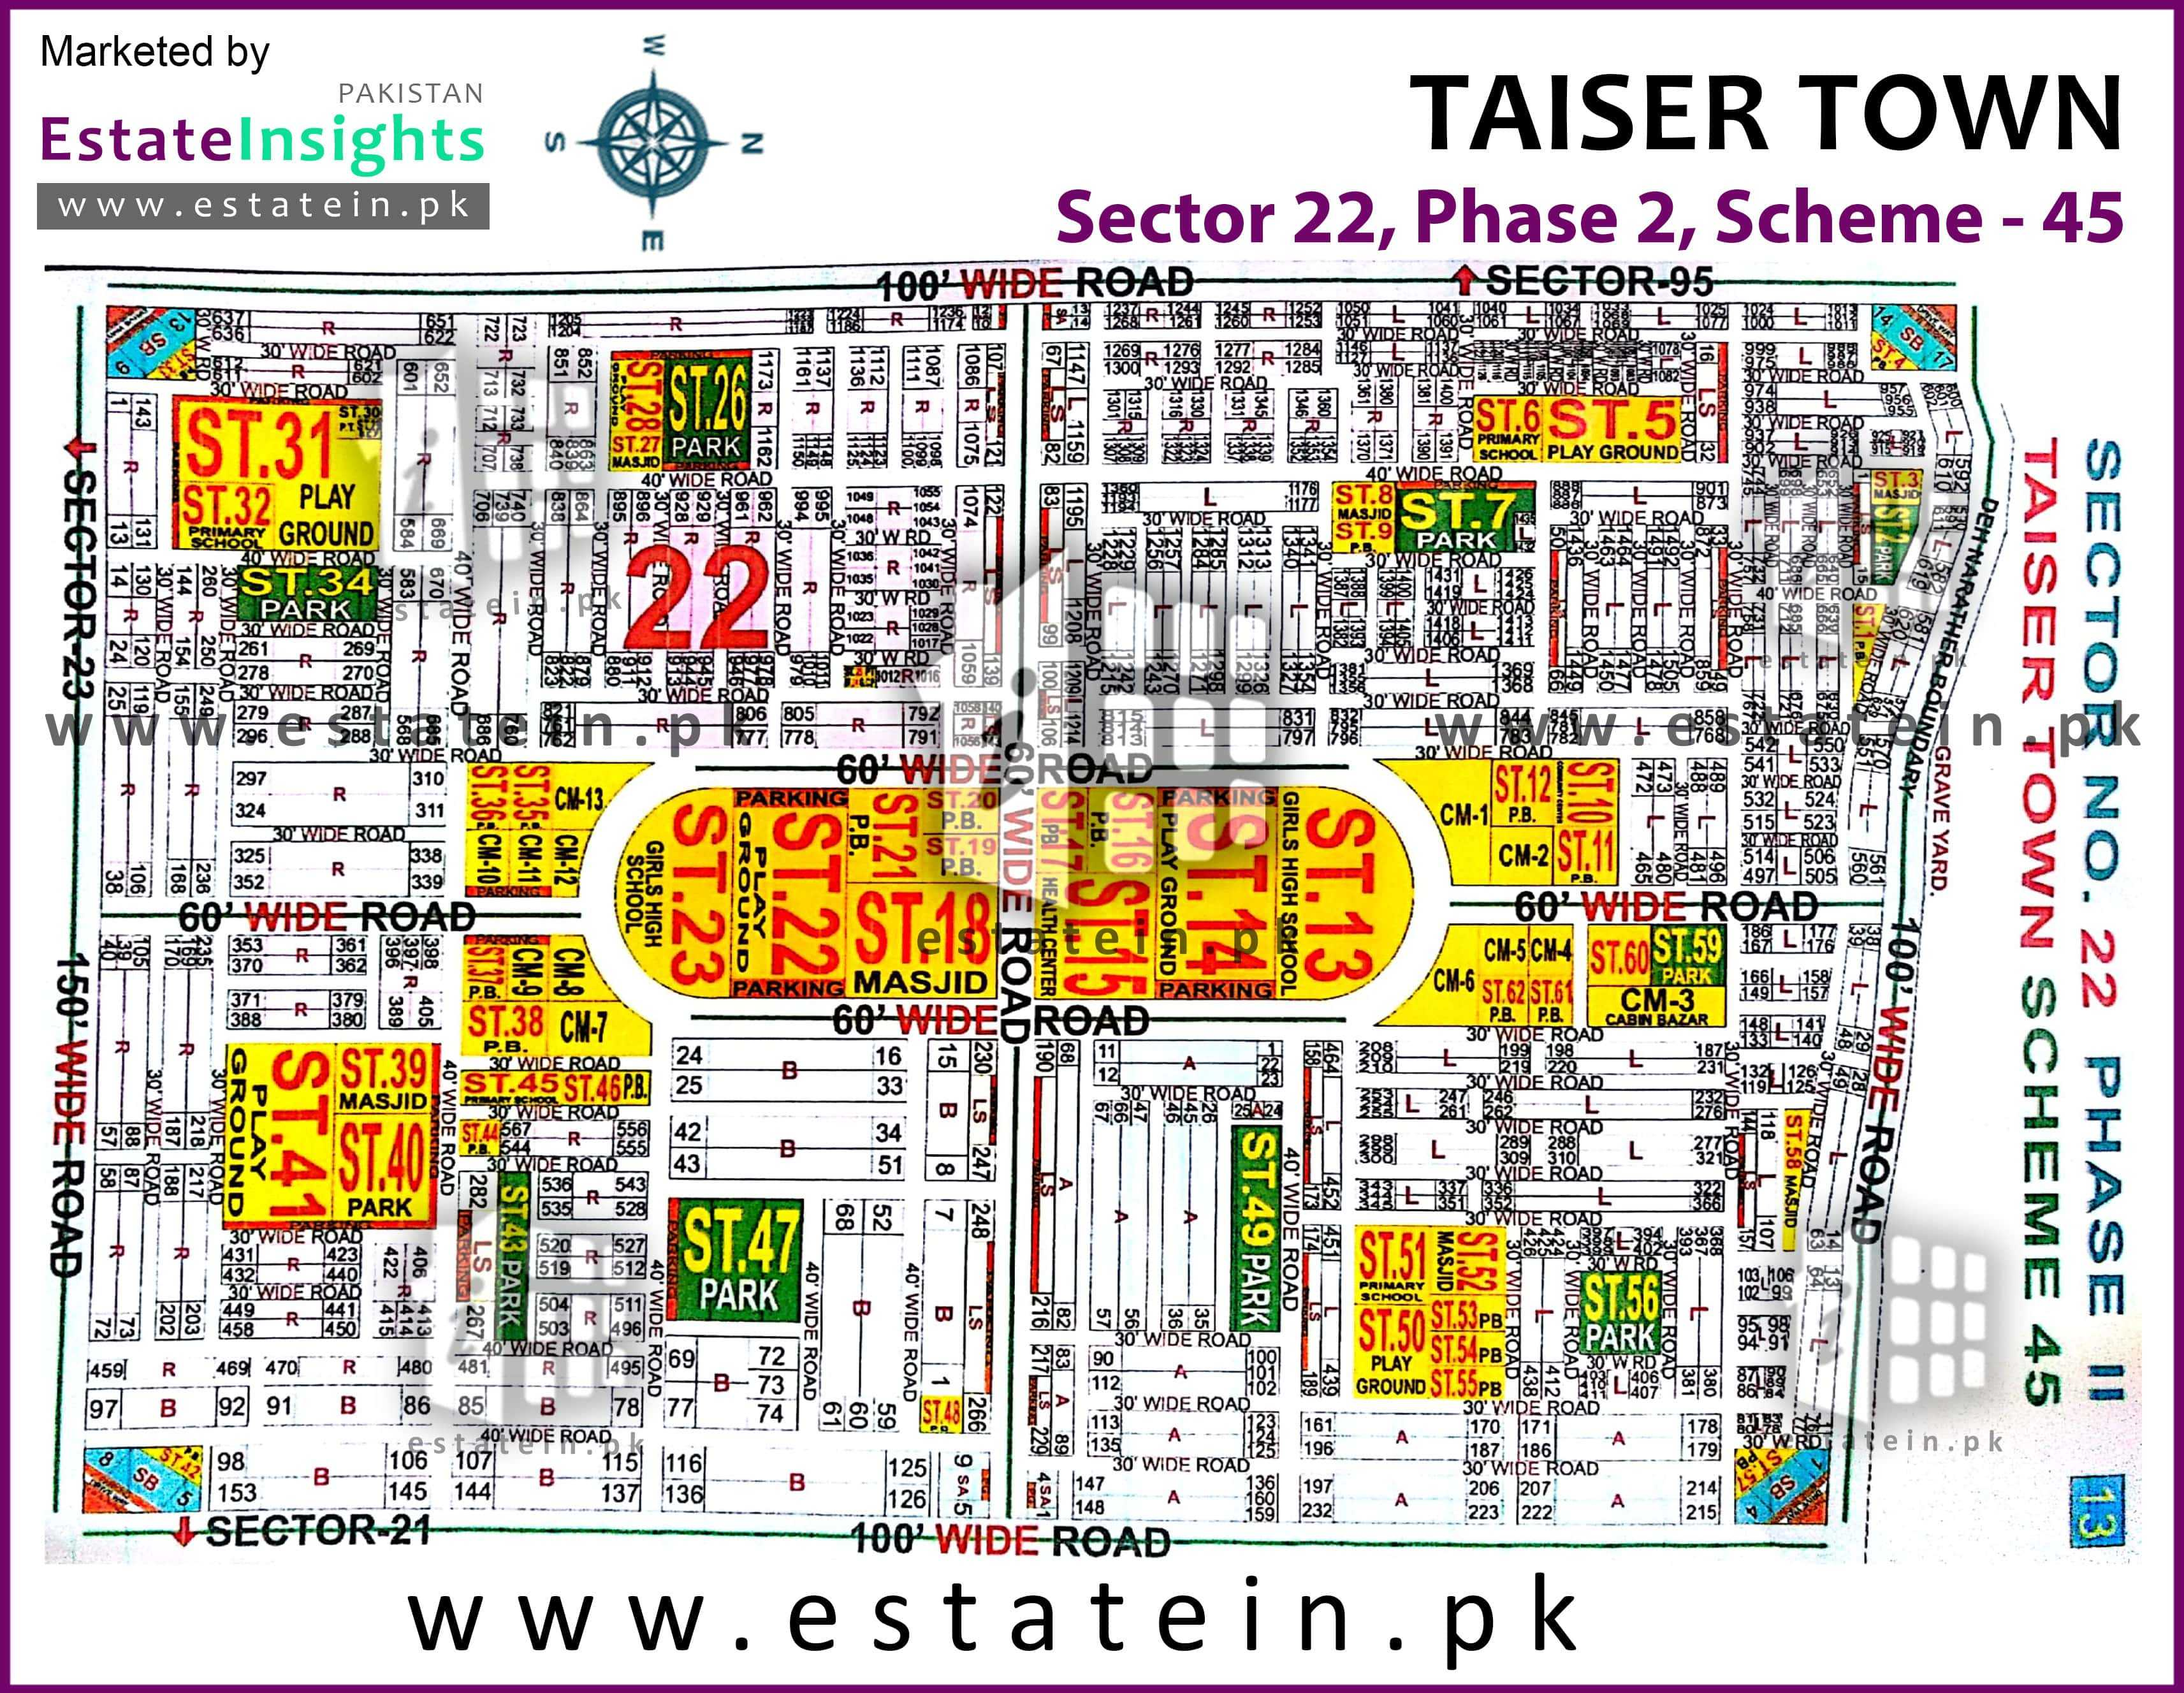 Site Plan of Sector 22 of Taiser Town Phase II